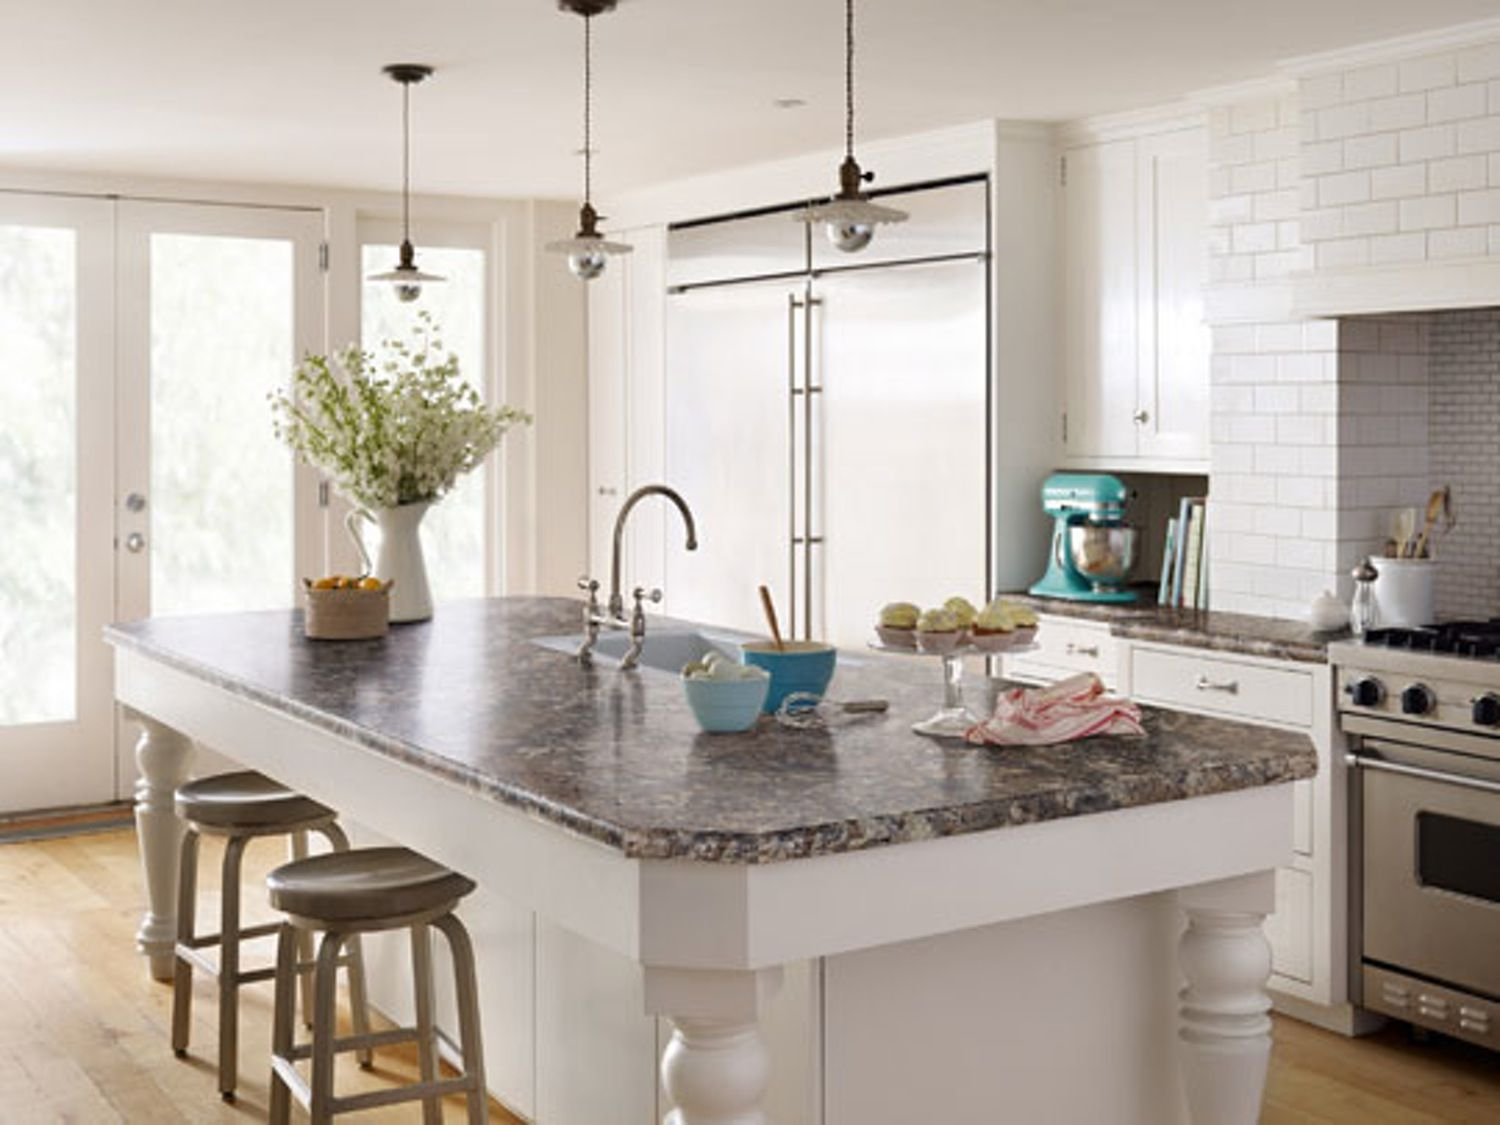 Can I Glue Laminate On Laminate Kitchen Island With Sink Kitchen Renovation Kitchen Must Haves